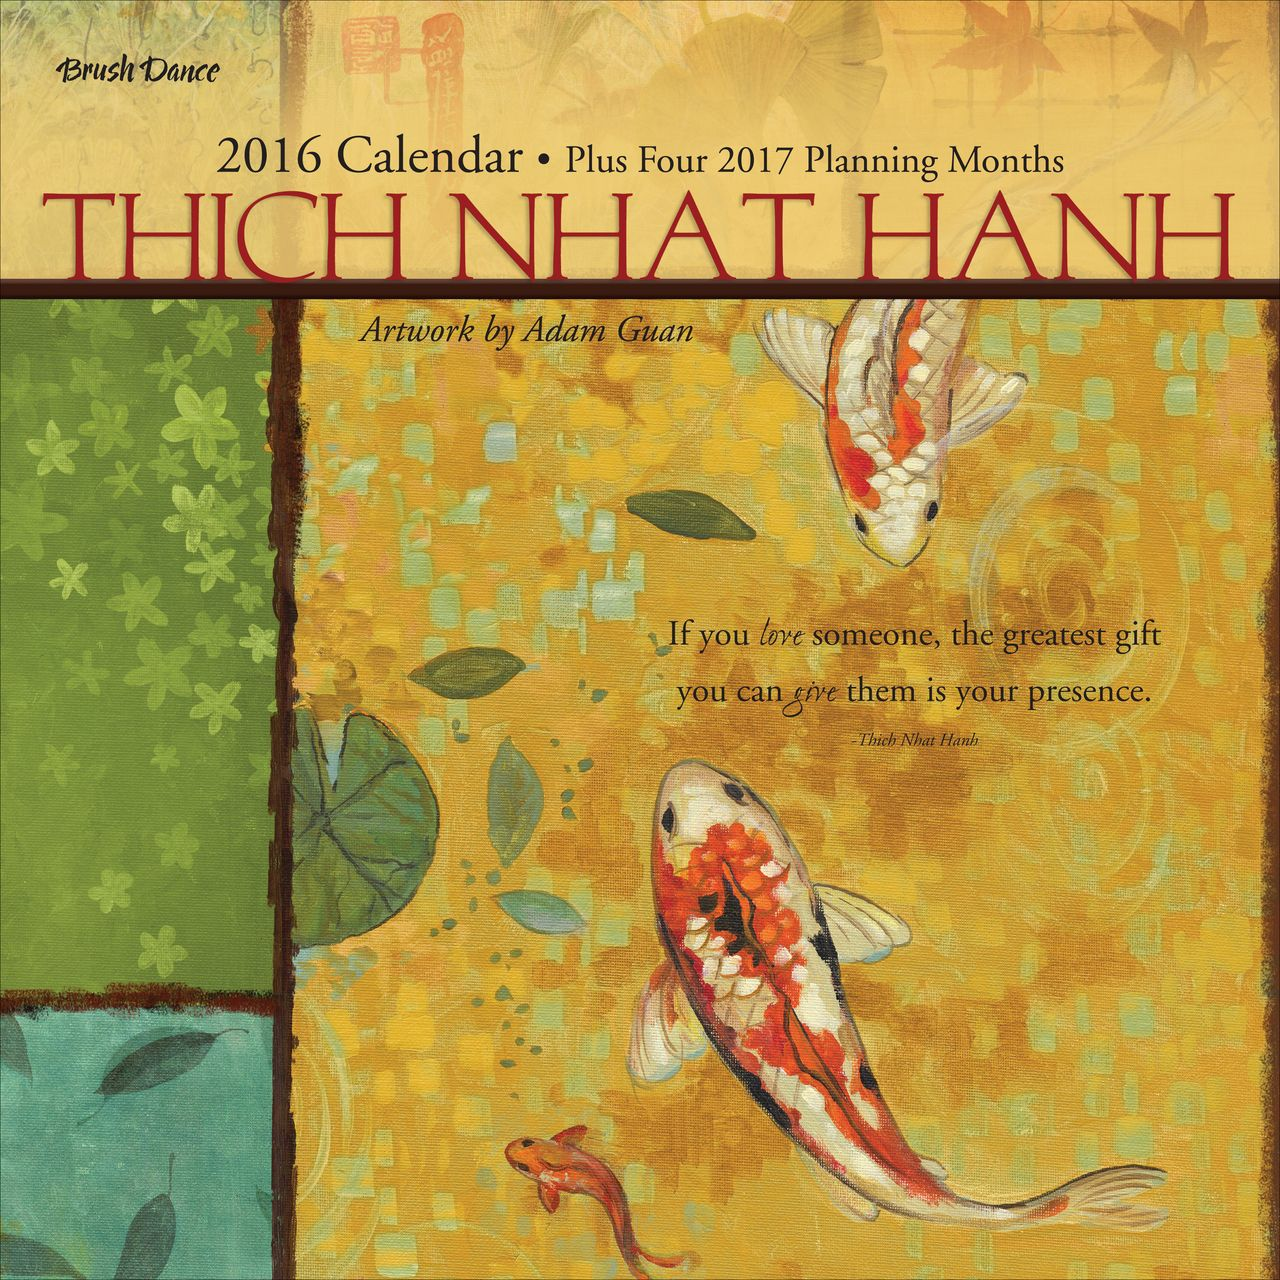 Brush Dance Thich Nhat Hanh 2016 Wall Calendar featuring the art of ...